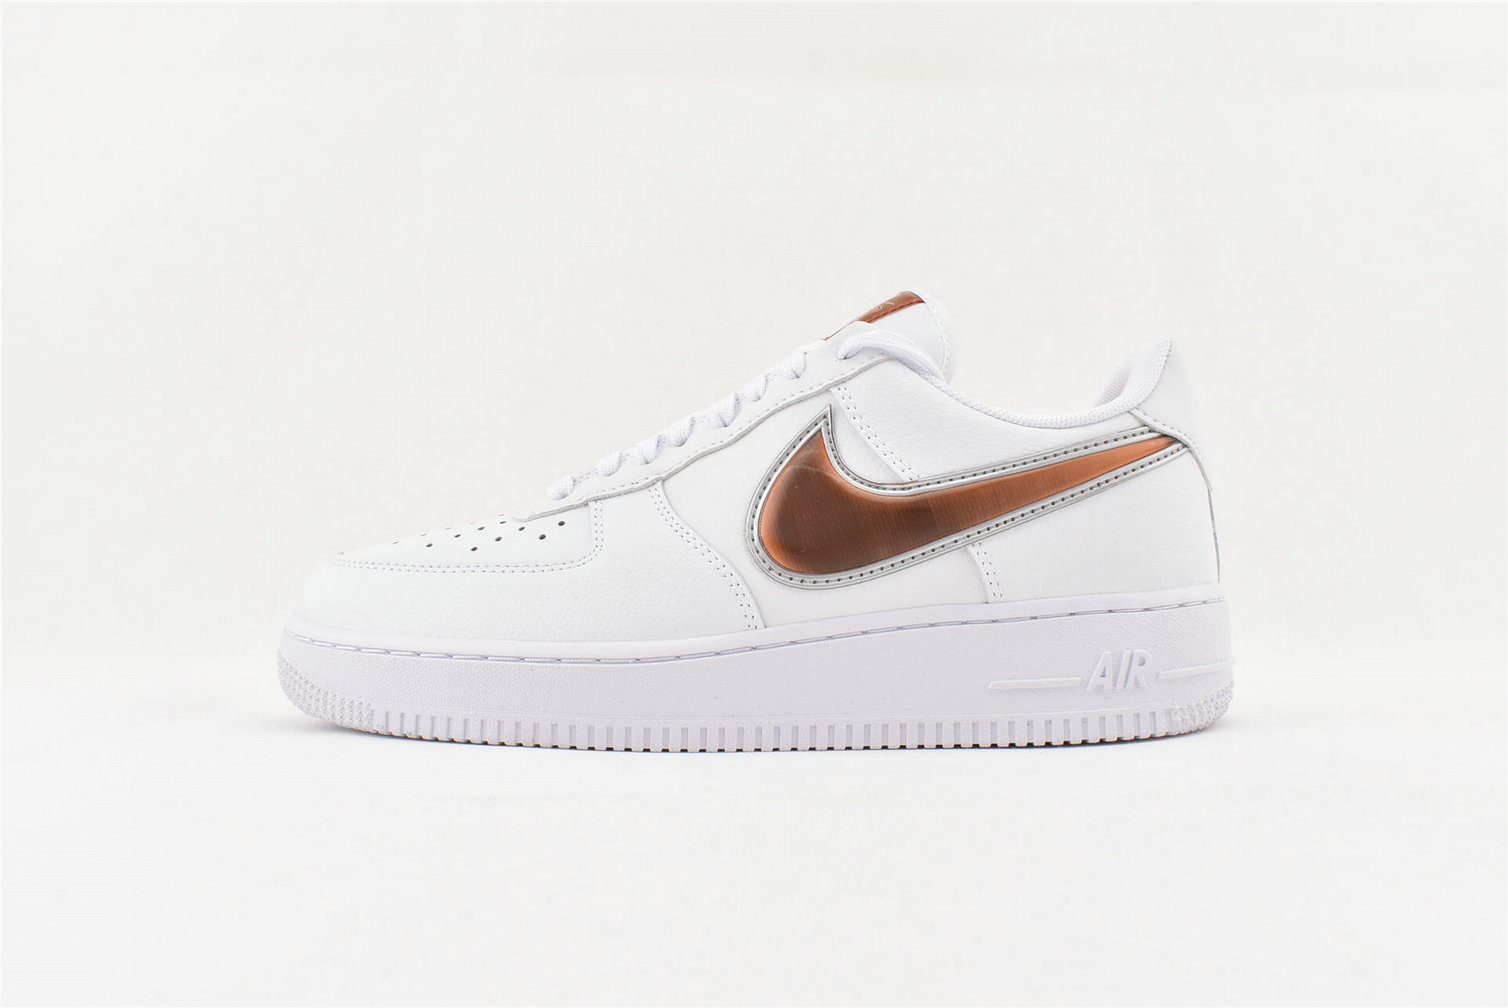 Where To Buy Cheap Nike Air Force 1 07 LV8 3 White Court Purple Infrared 23 CI6387-171 On VaporMaxRunning